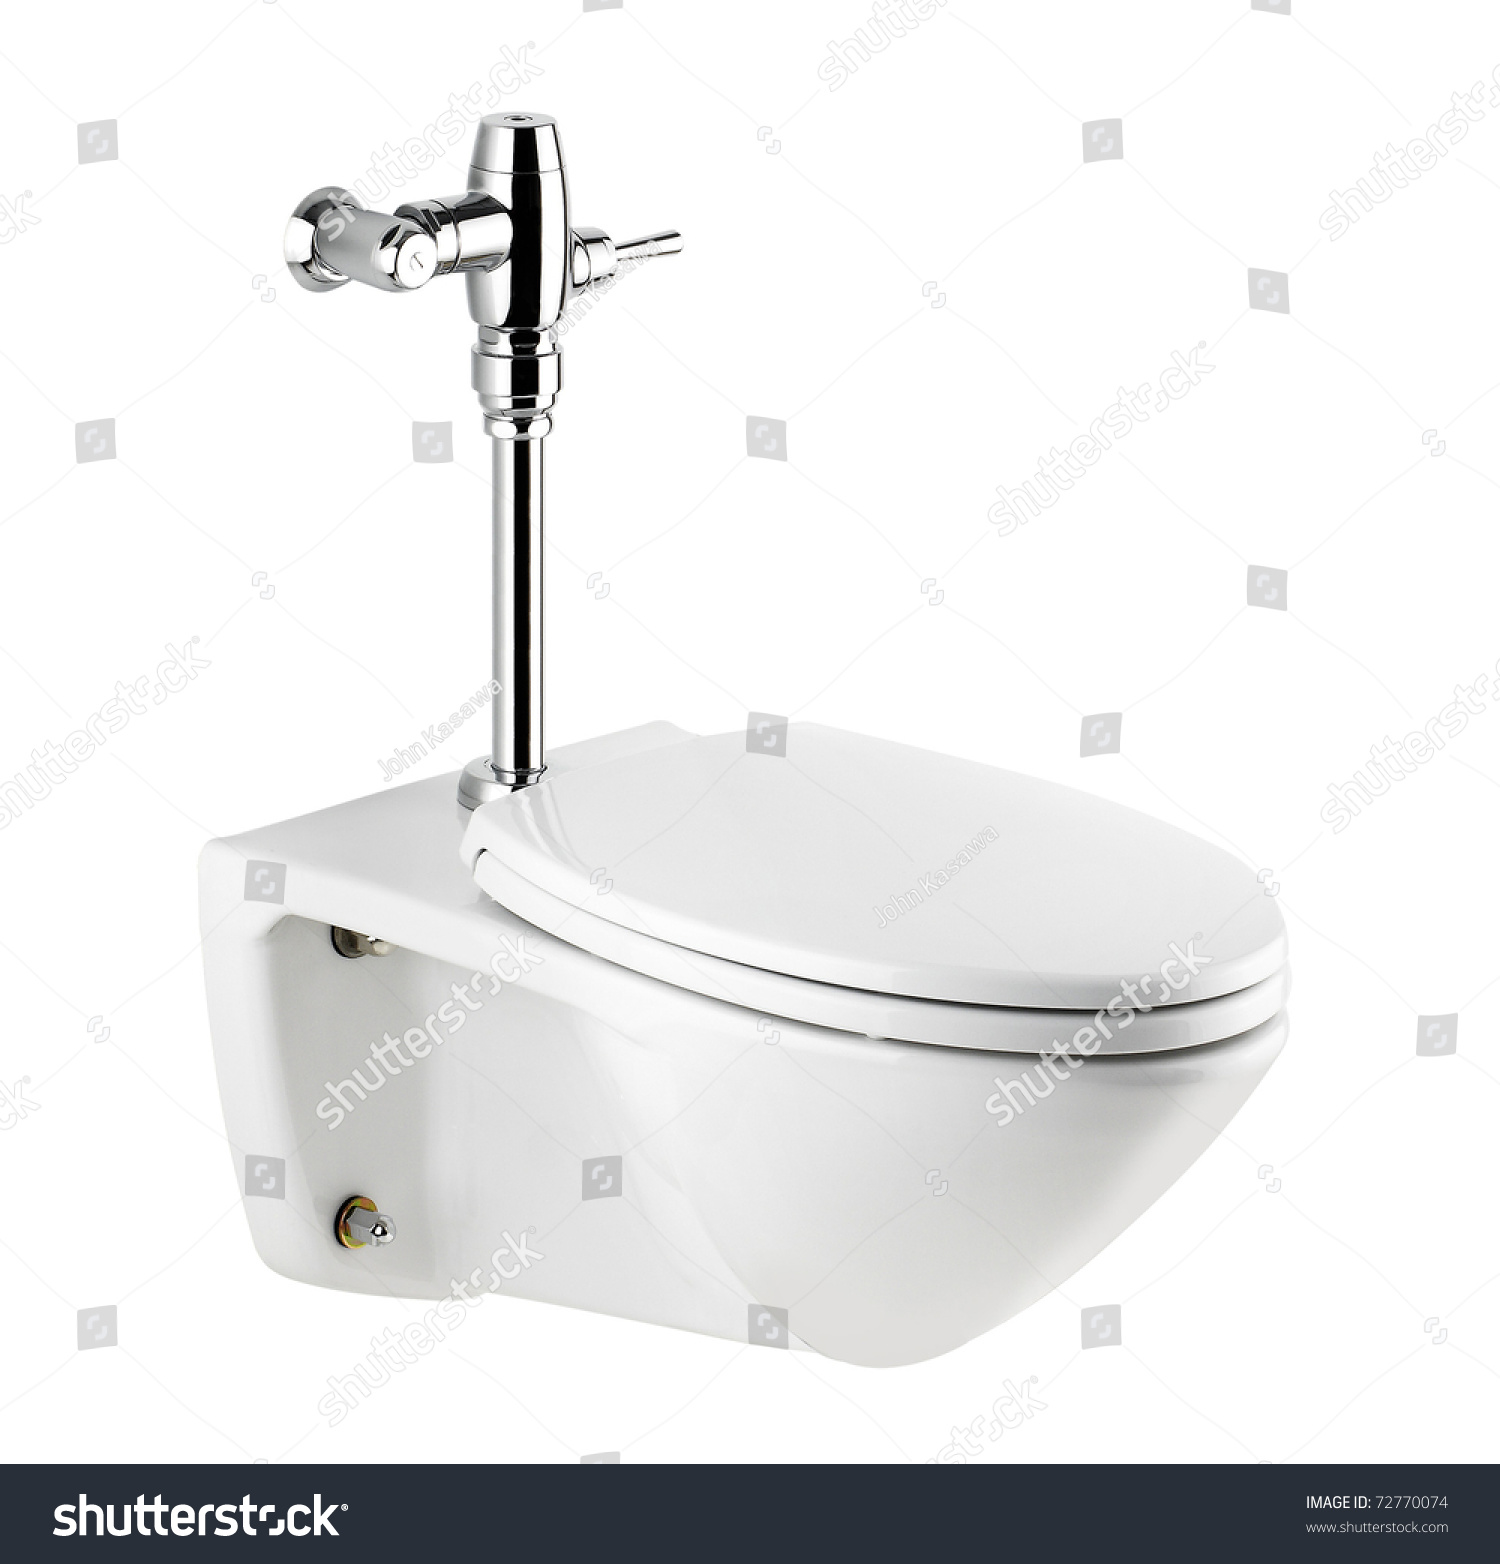 Nice Toilet And Urinate Bowl A Nice Bathroom Accessories Isolated On White Background Stock